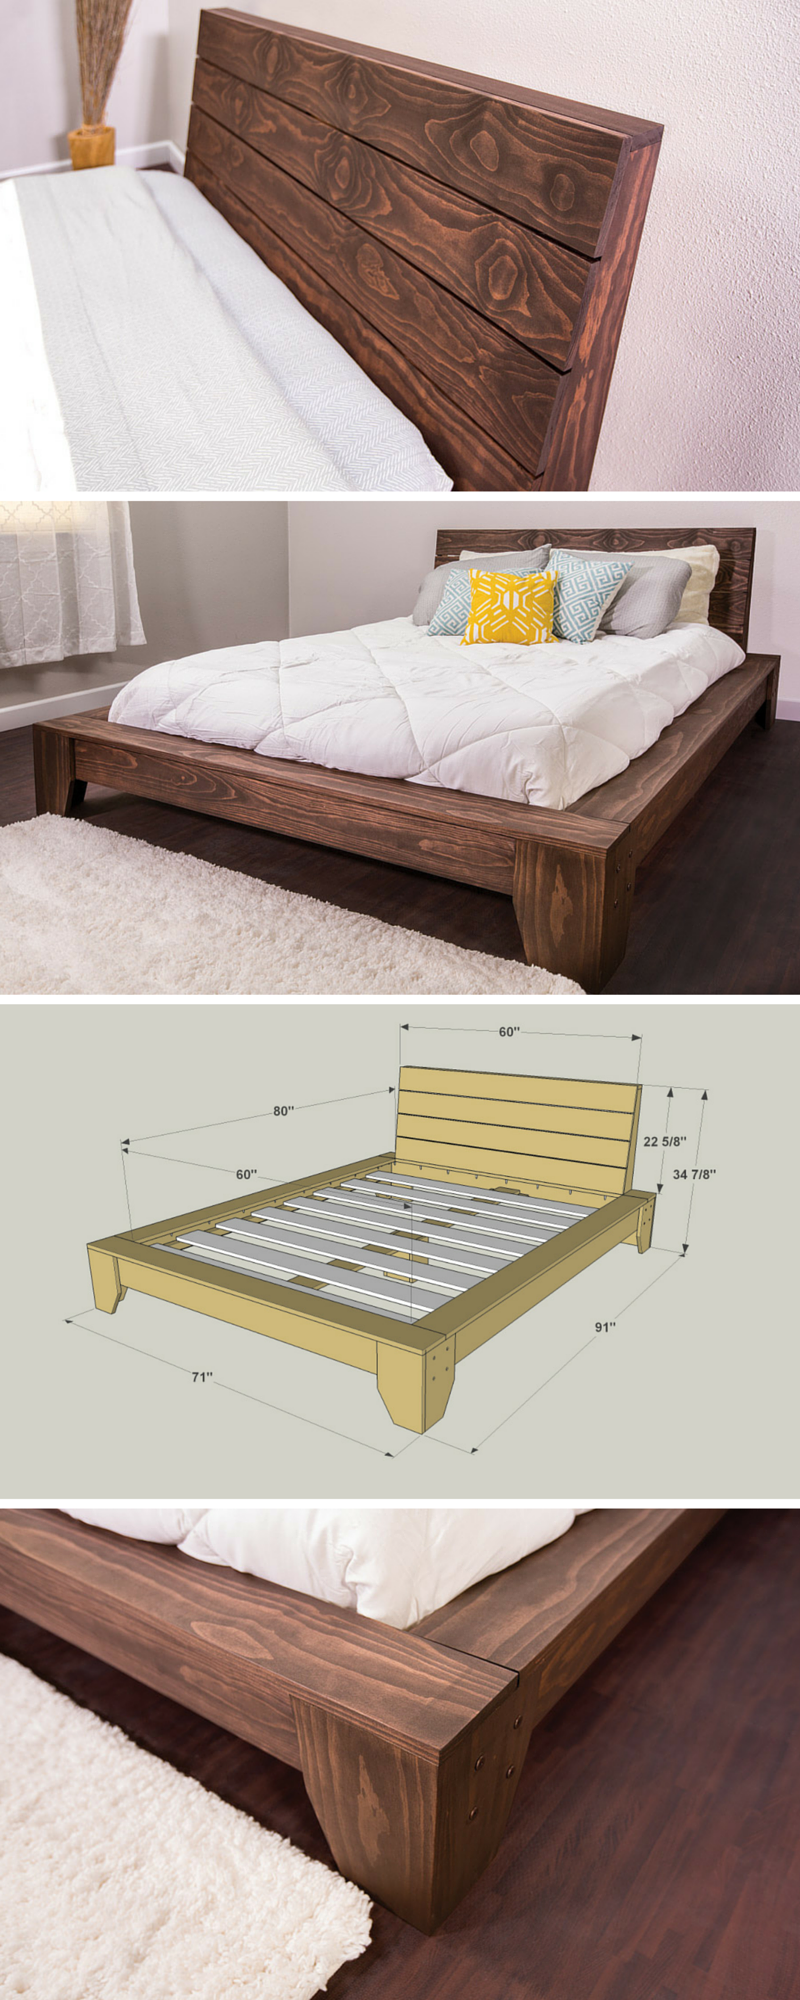 Build yourself this beautiful platform bed and